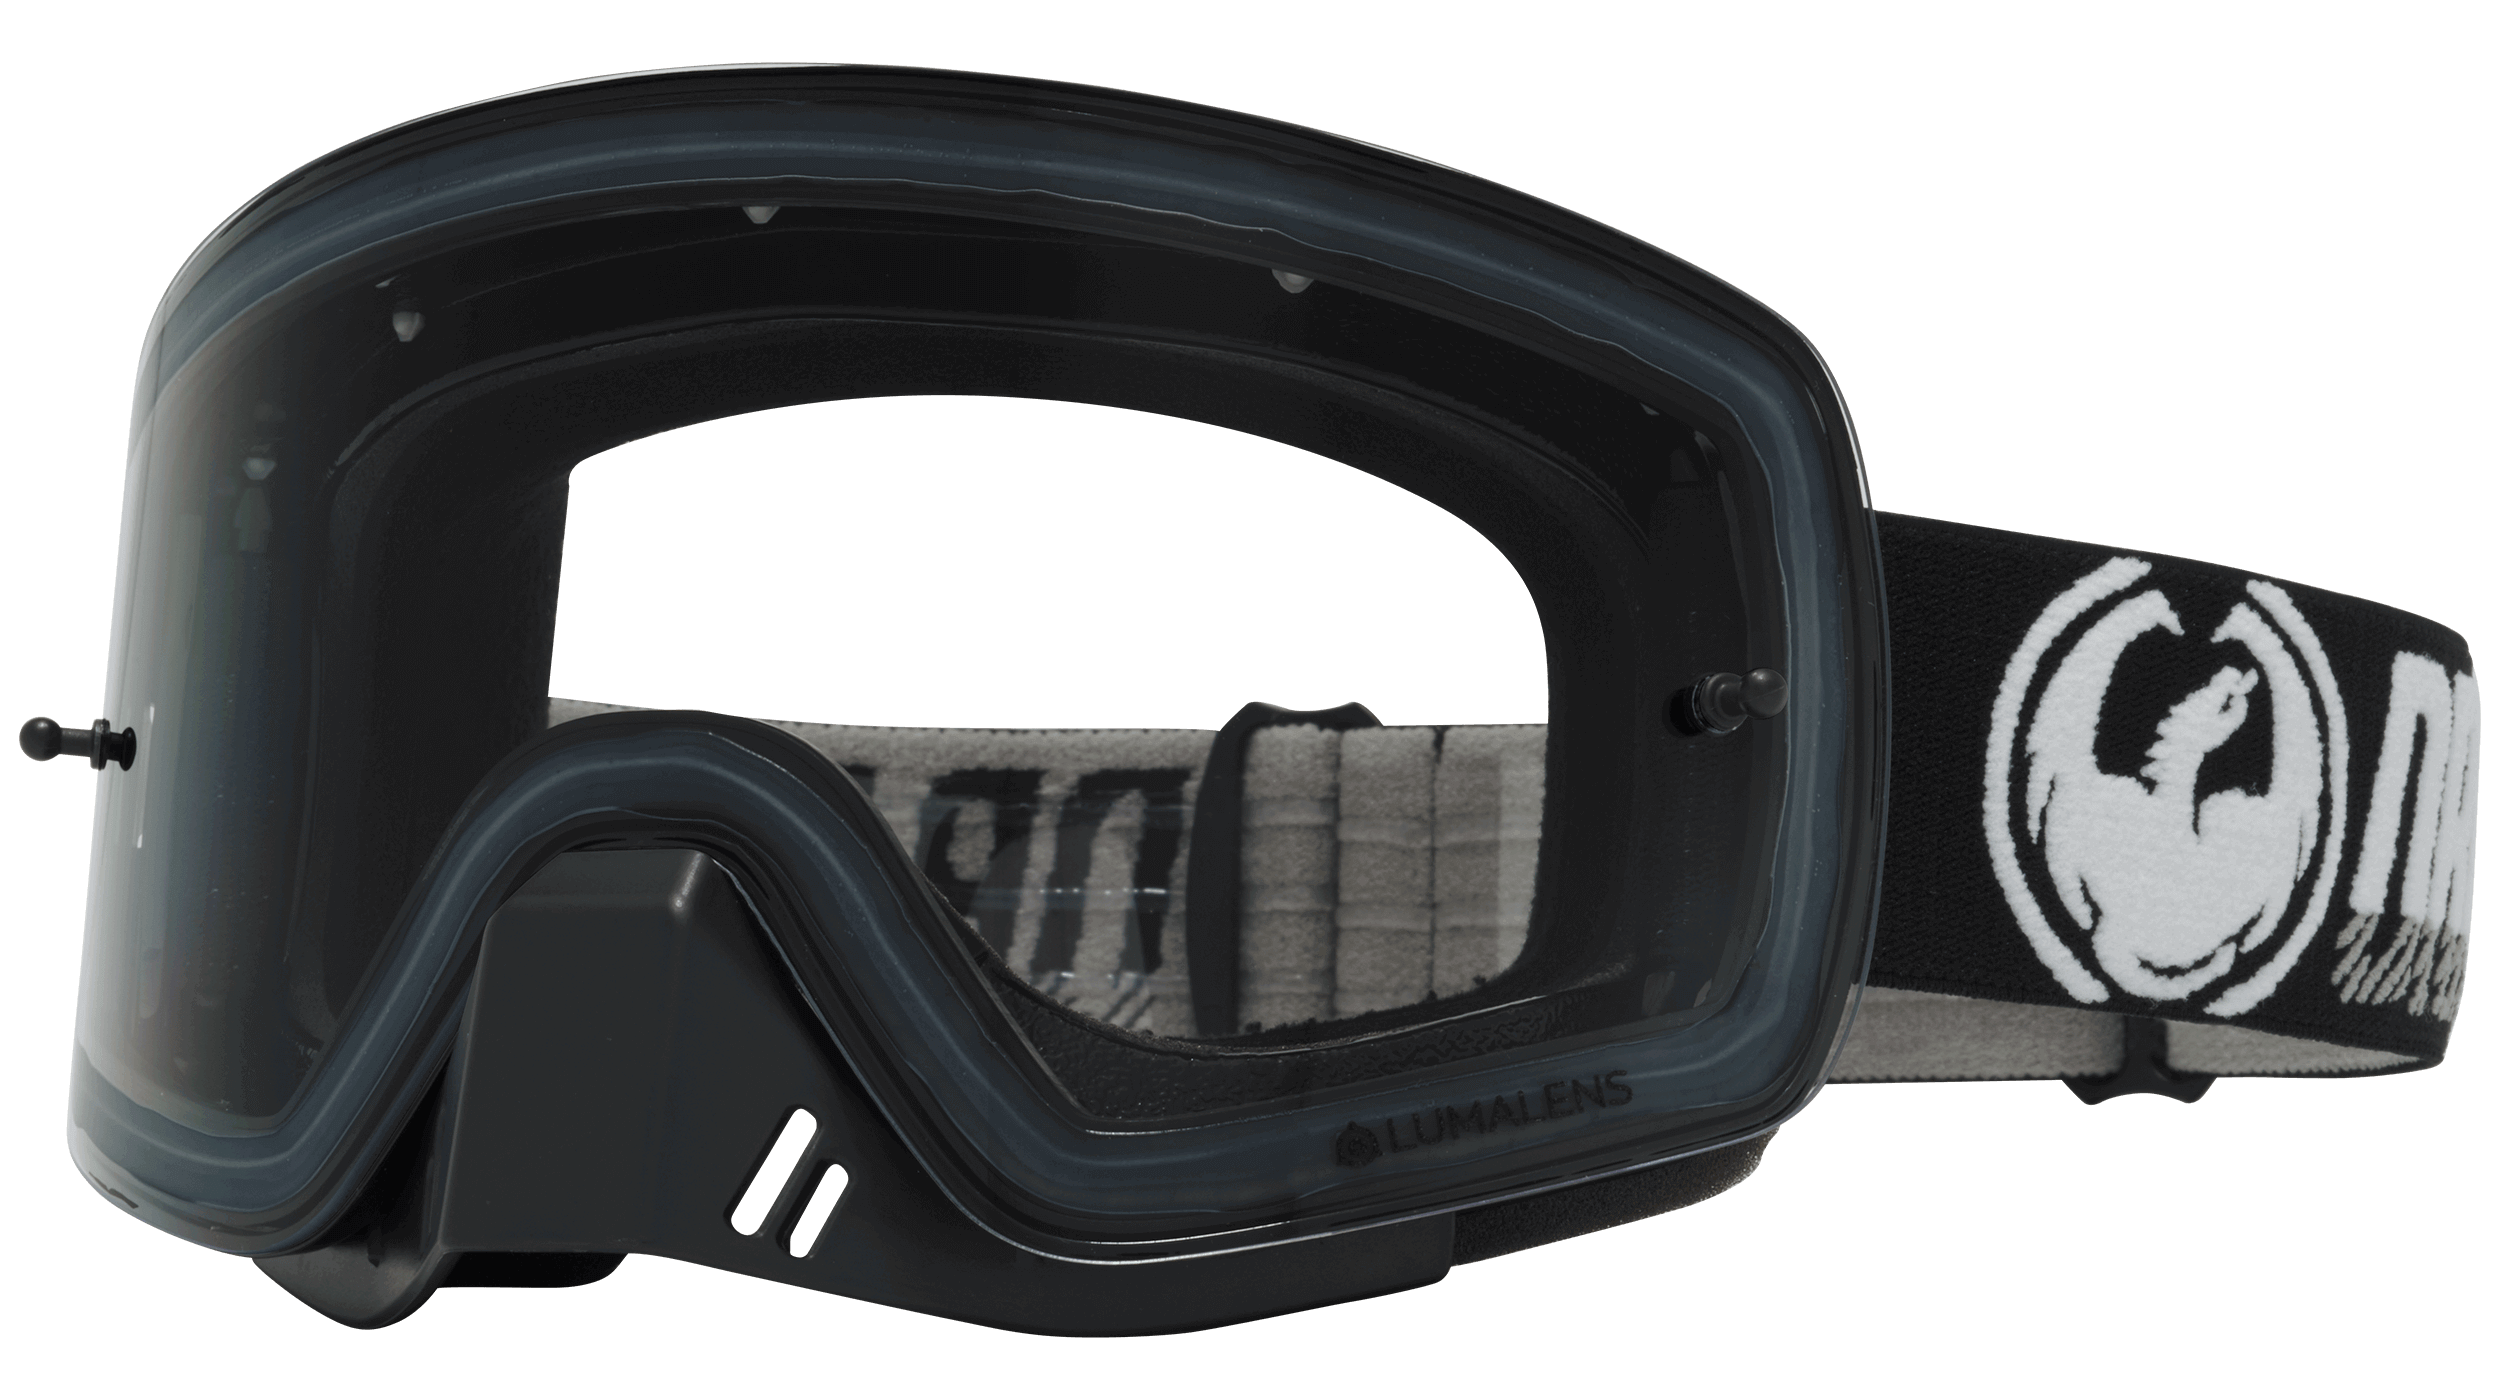 NFXS MX WITH PHOTOCHROMIC LENS